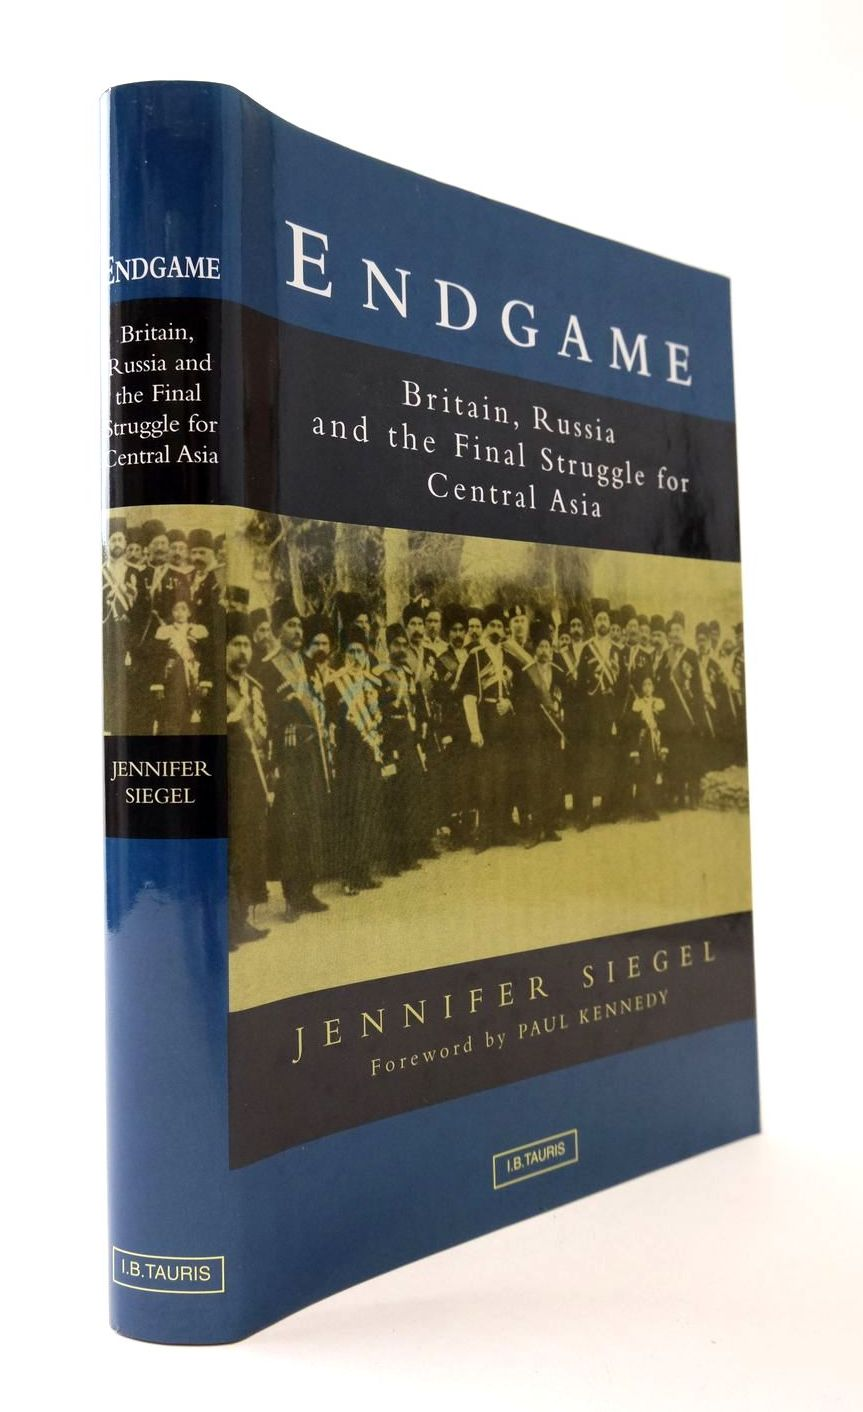 Photo of ENDGAME: BRITAIN, RUSSIA AND THE FINAL STRUGGLE FOR CENTRAL ASIA written by Siegel, Jennifer published by I.B. Tauris & Co. Ltd. (STOCK CODE: 2132353)  for sale by Stella & Rose's Books